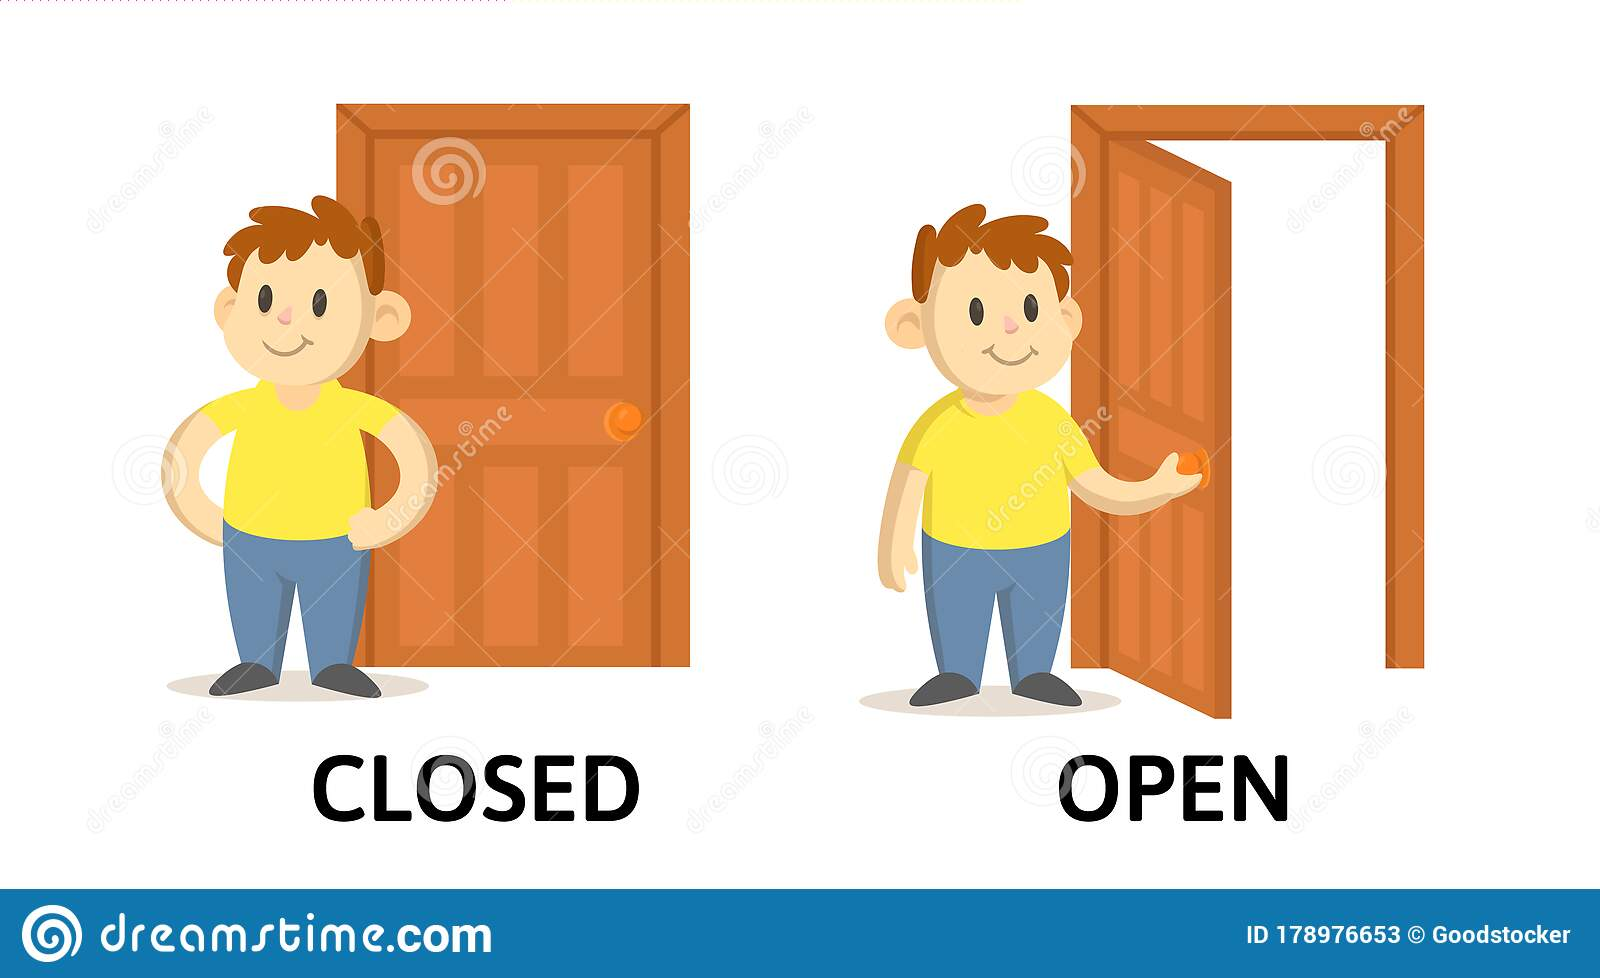 Words Closed And Open Flashcard With Cartoon Characters